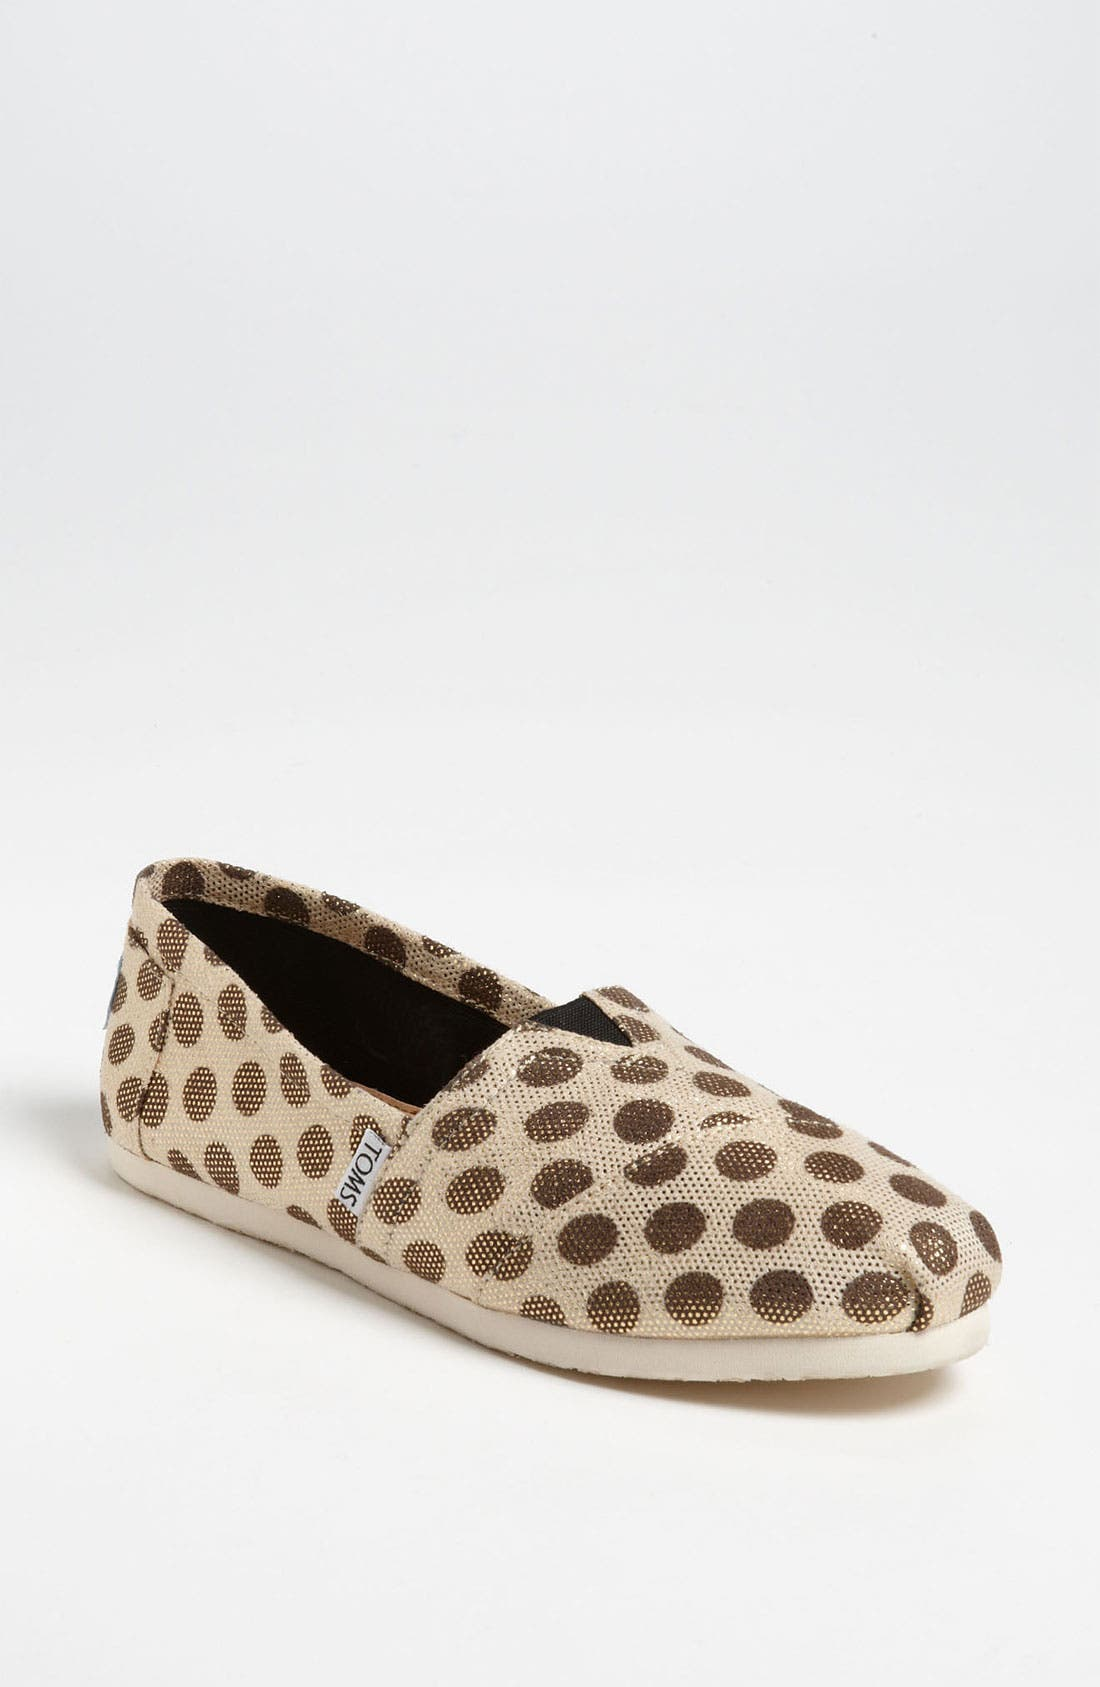 Main Image - TOMS 'Classic - Metallic Dot' Slip-On (Women)